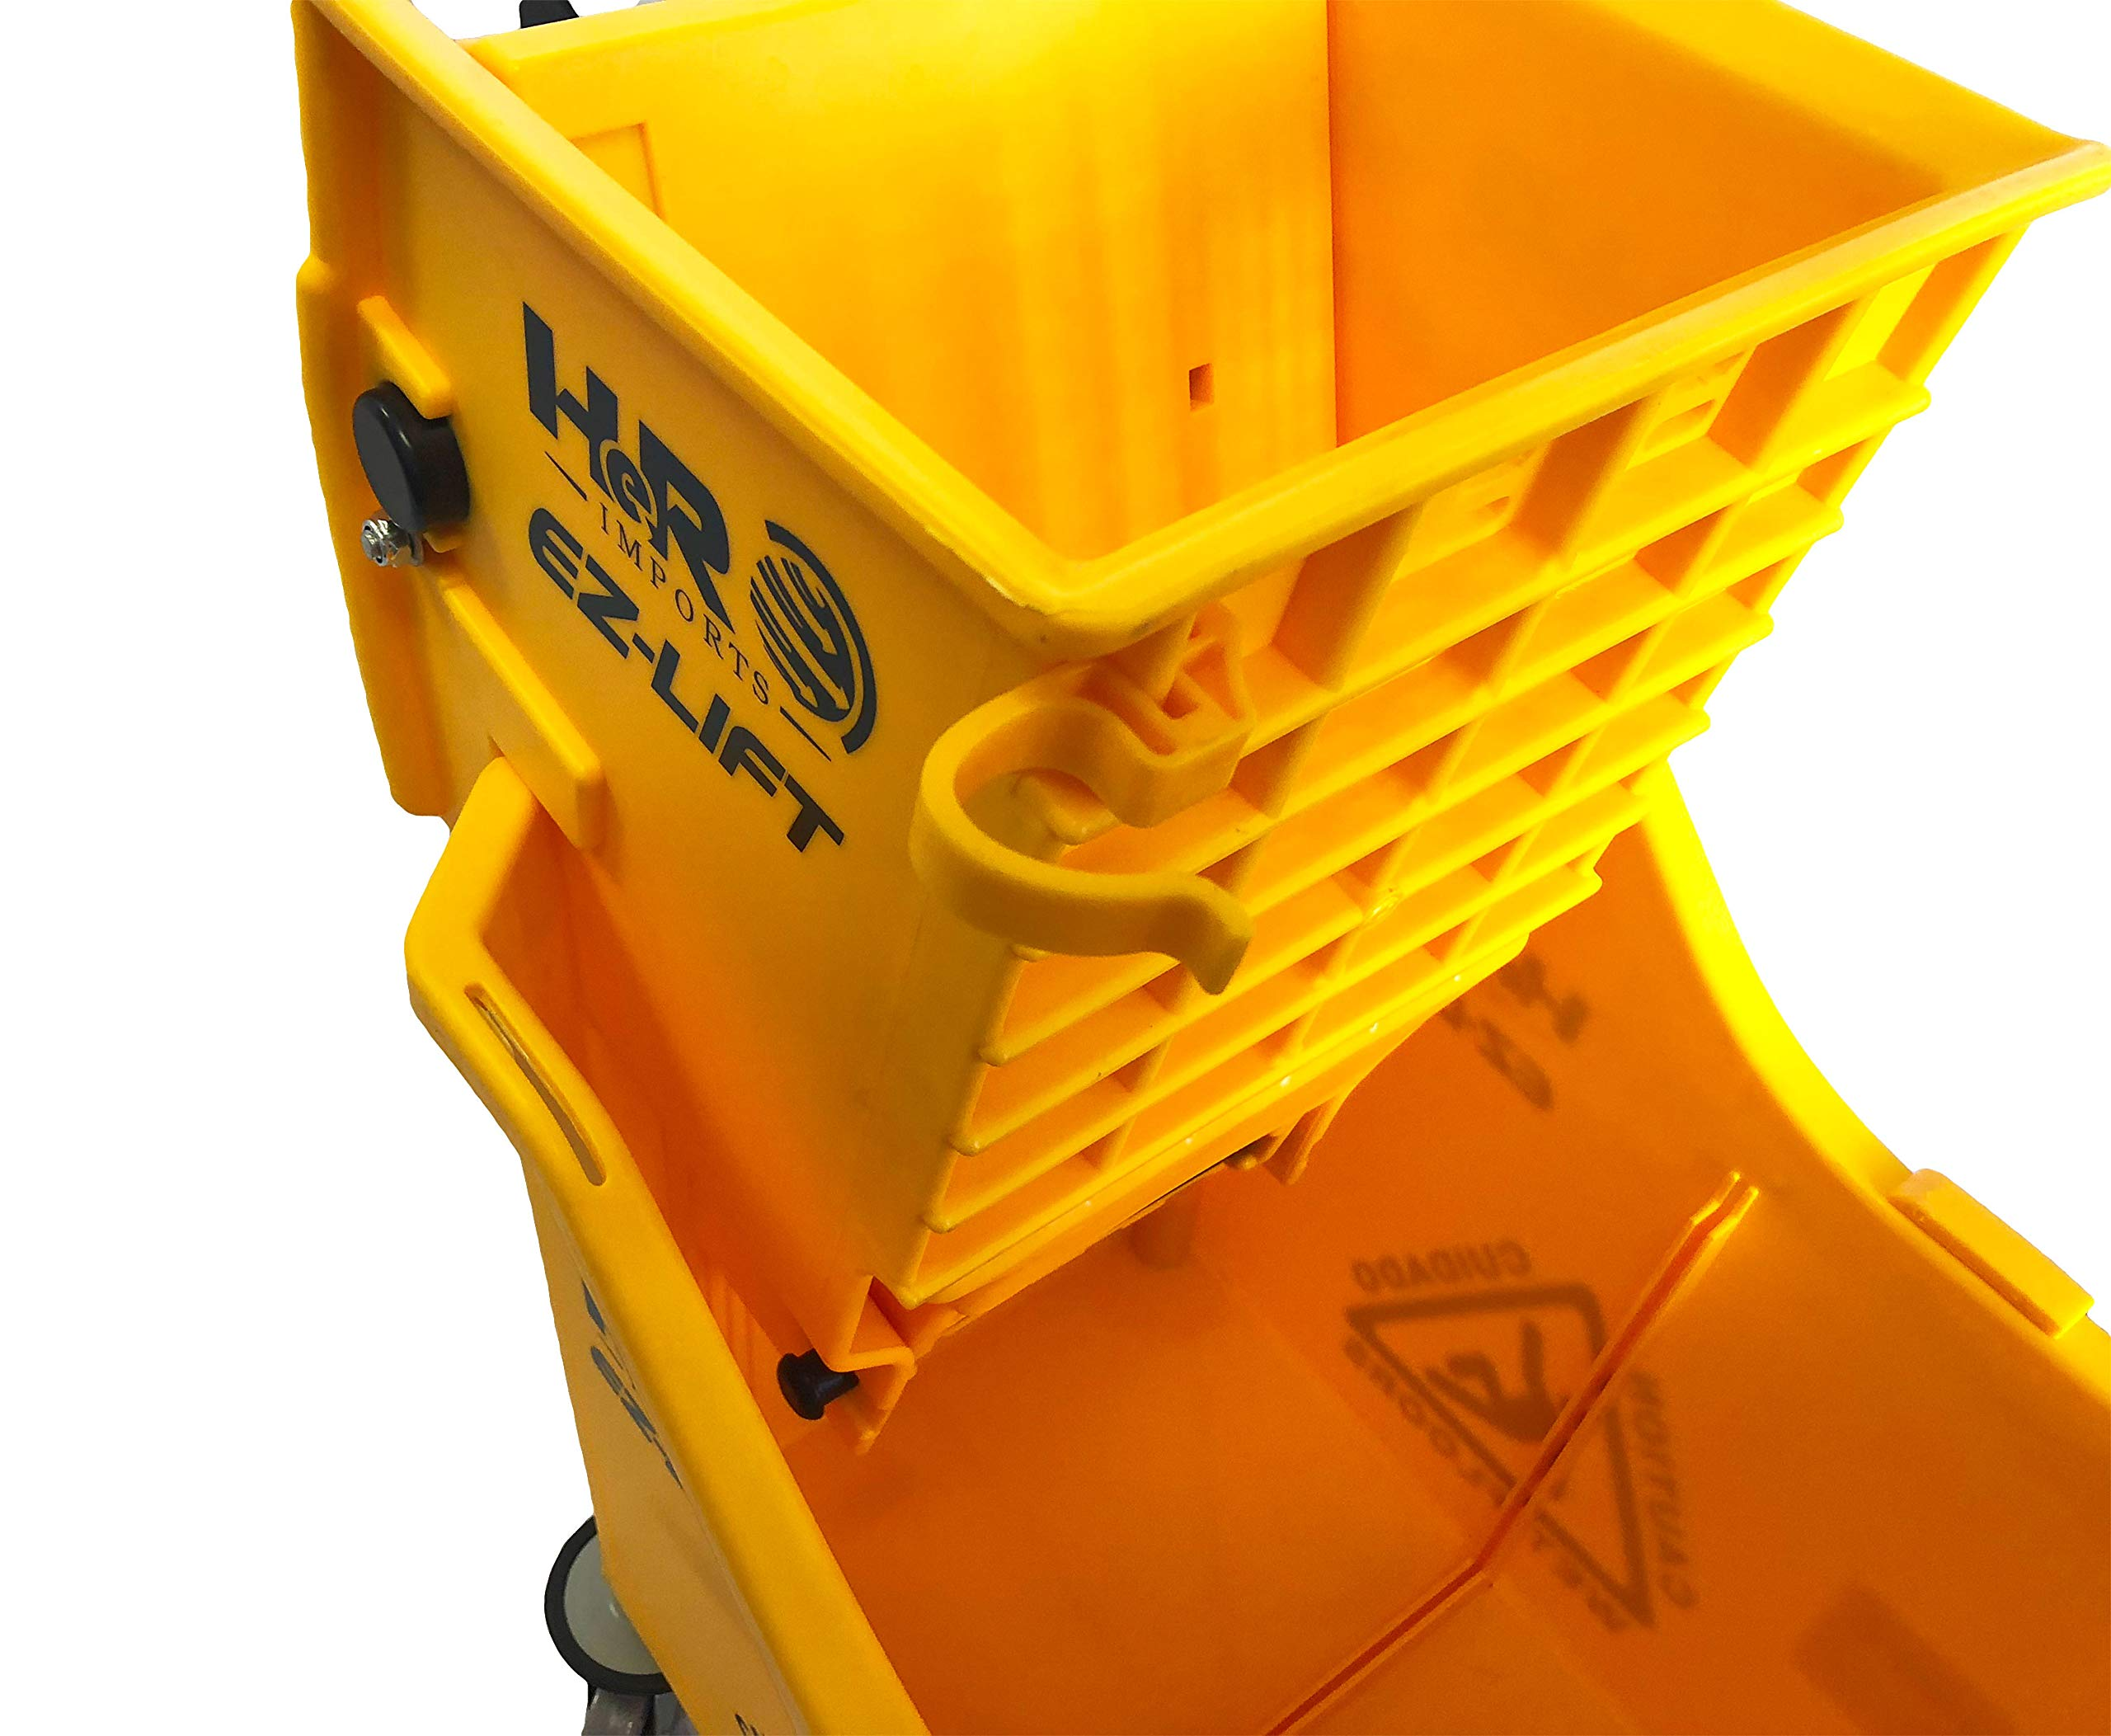 Hero EZ-LIFT Dual Cavity Commercial Mop Bucket with Wringer on Wheels, includes Dirty Water Bucket (36-Quart   9 Gallon Cleaning Bucket) by HERO IMPORTS (Image #8)